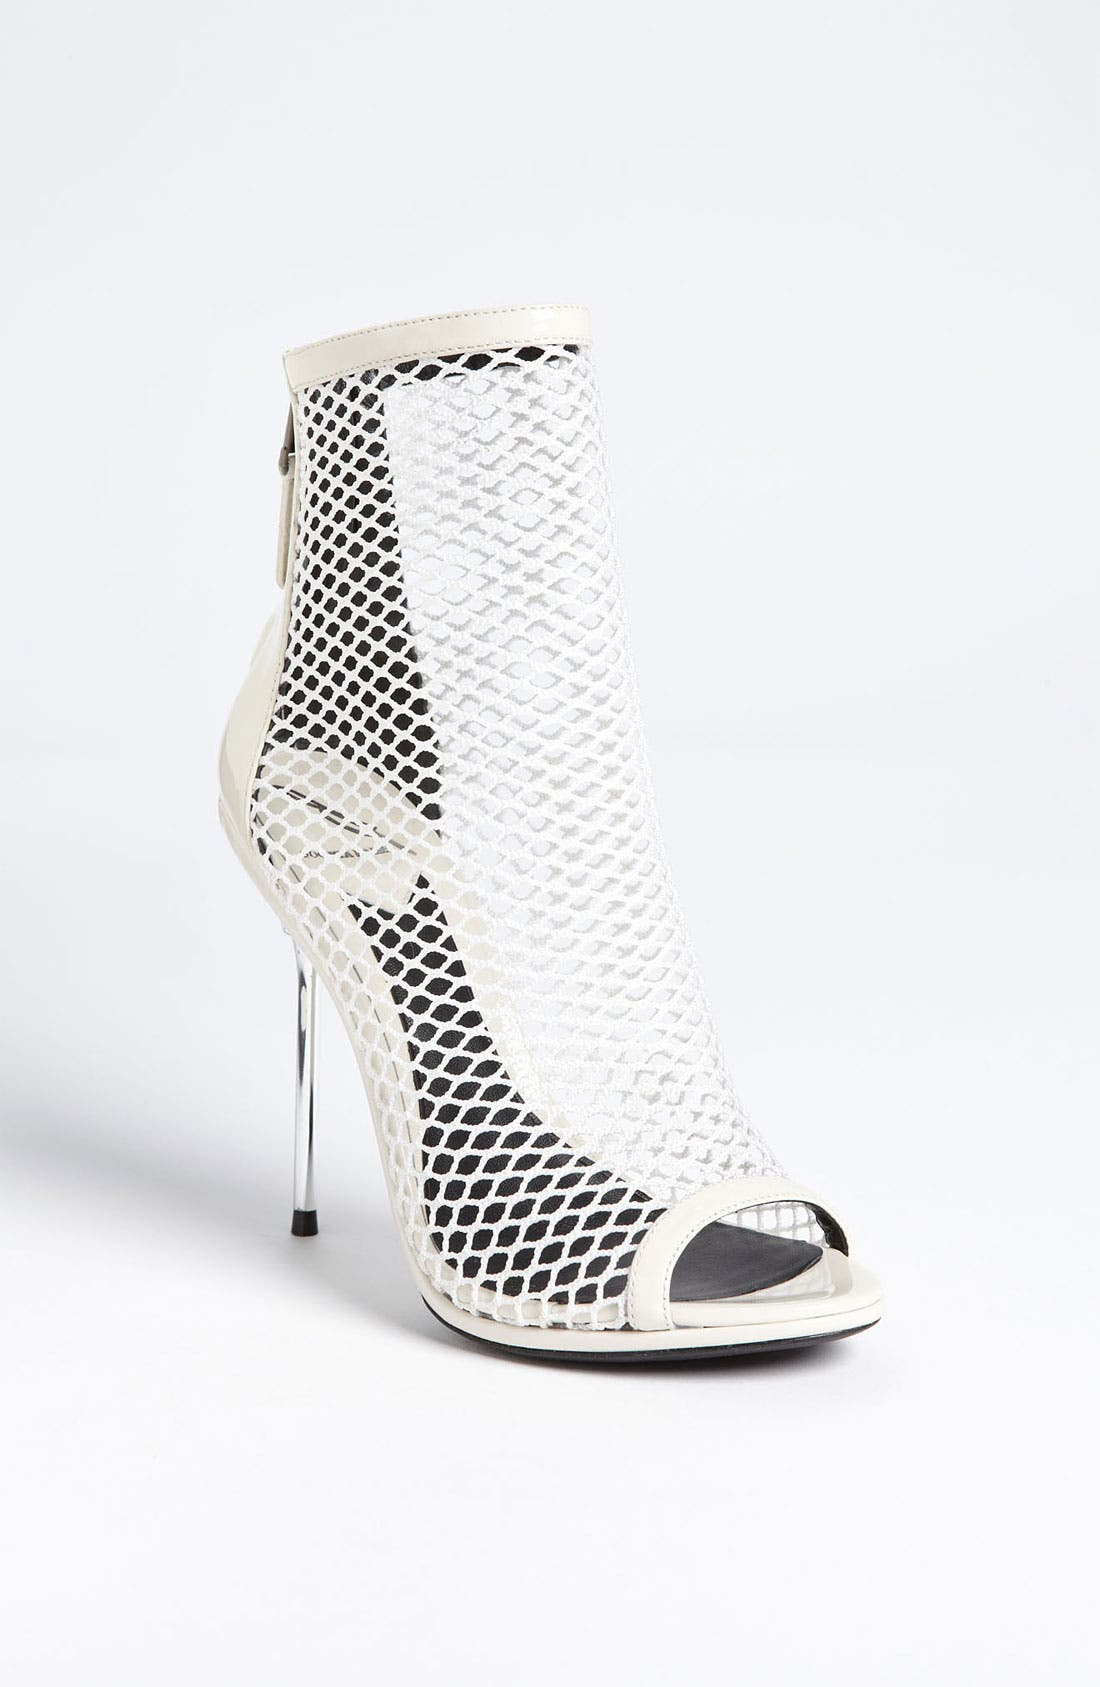 Alternate Image 1 Selected - B. Brian Atwood 'Michelet' Bootie